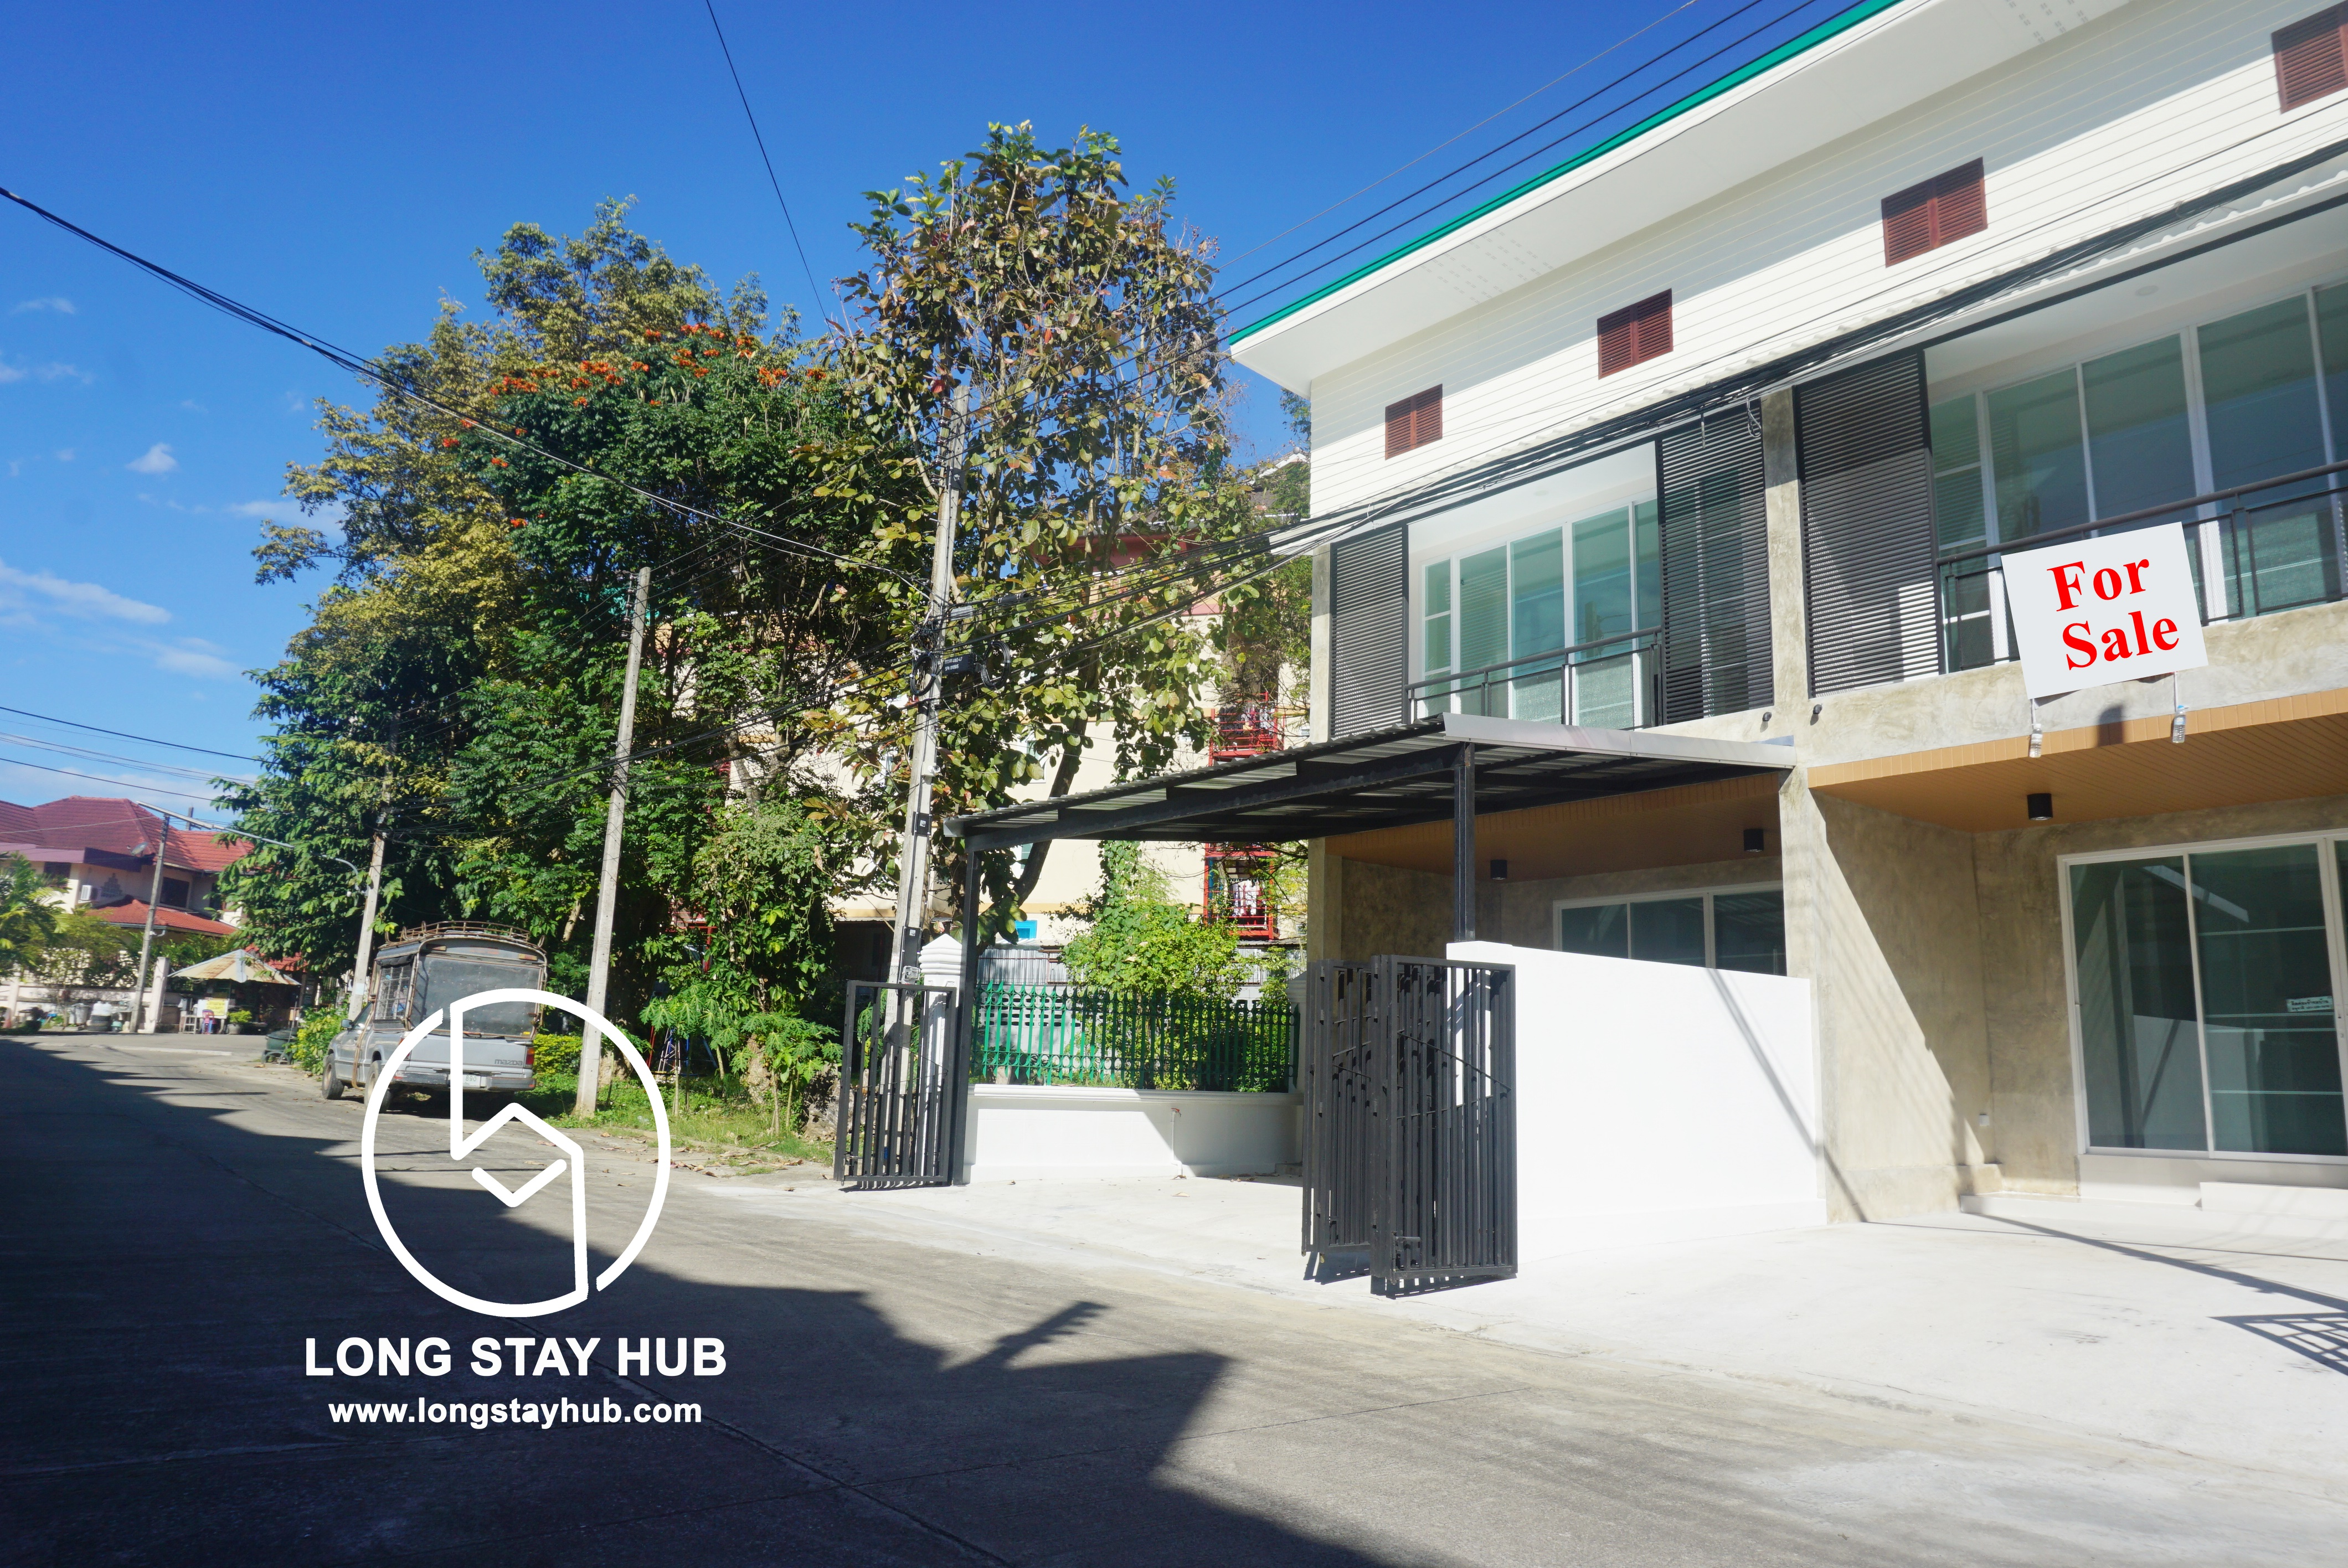 2 Storey Twins home  for sale near Chiang Mai University